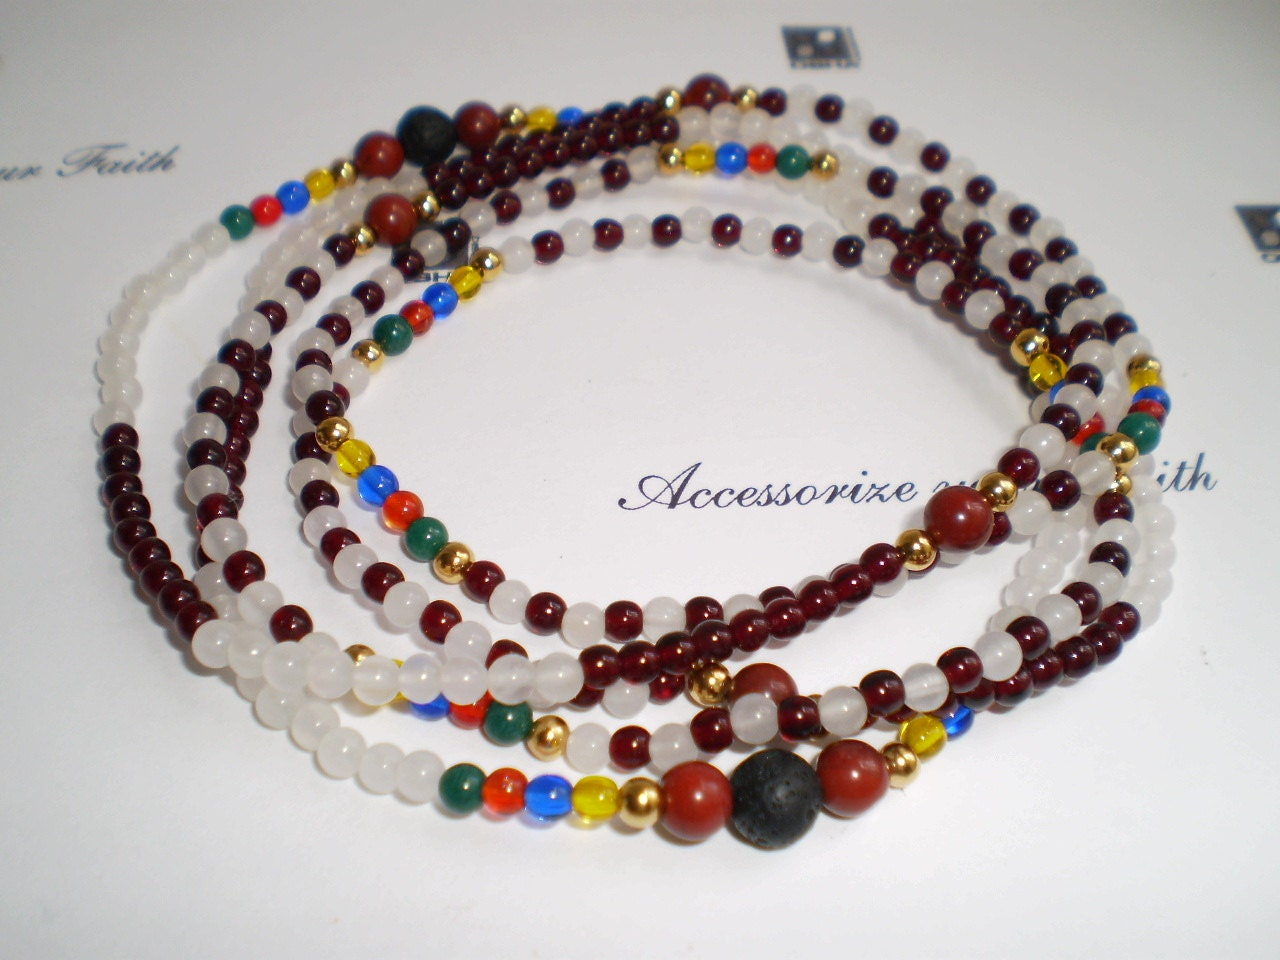 Santeria Beads Images - Reverse Search